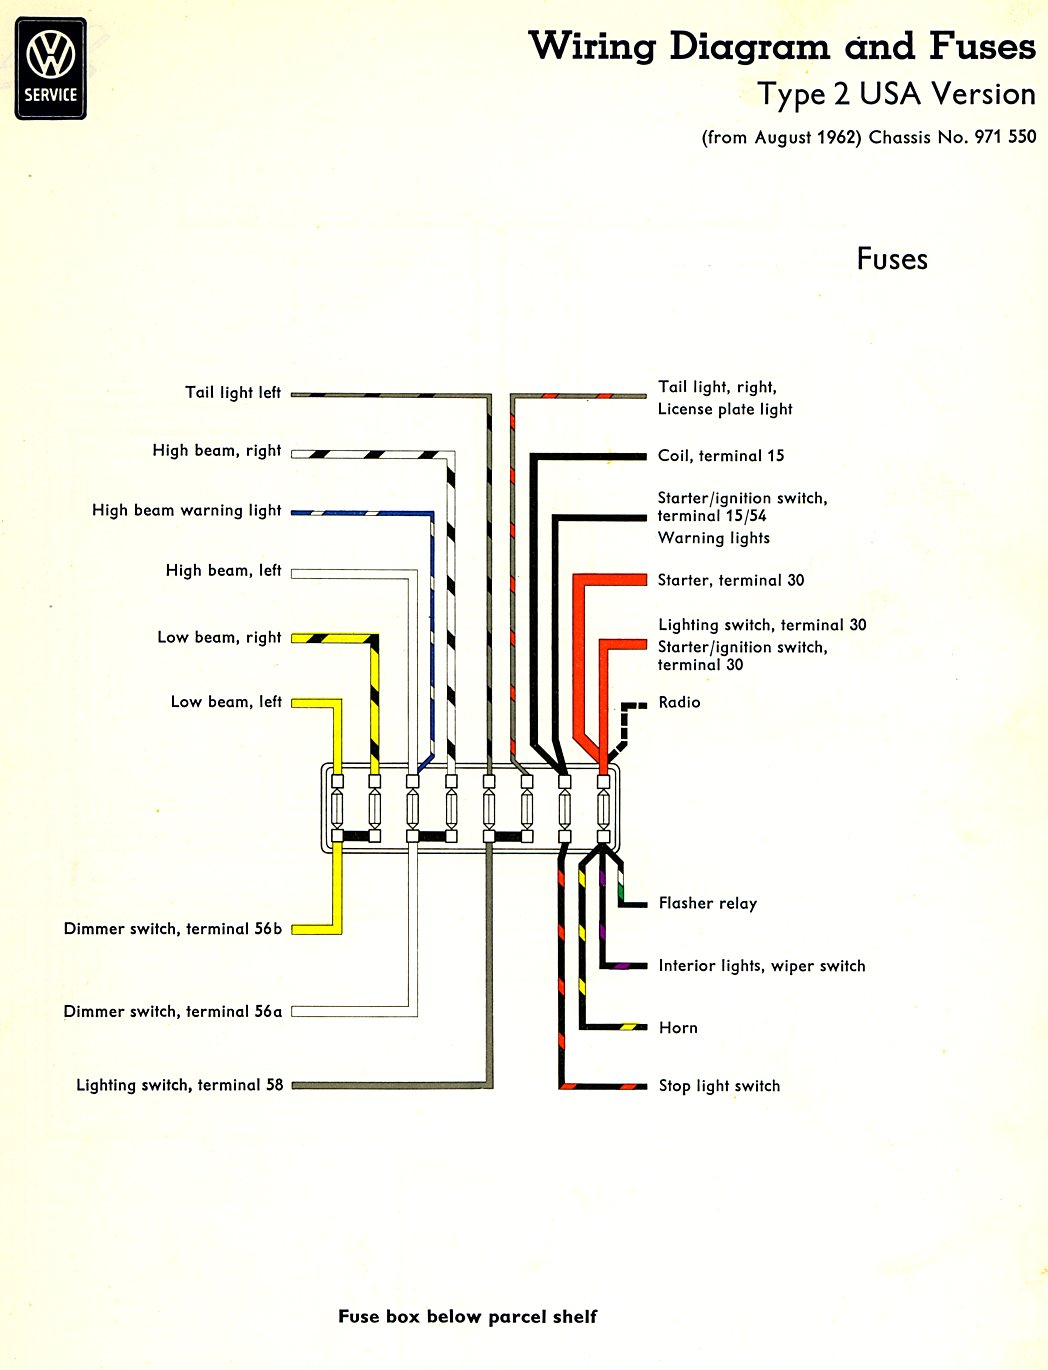 1967 vw wiring diagrams vw bus engine diagram